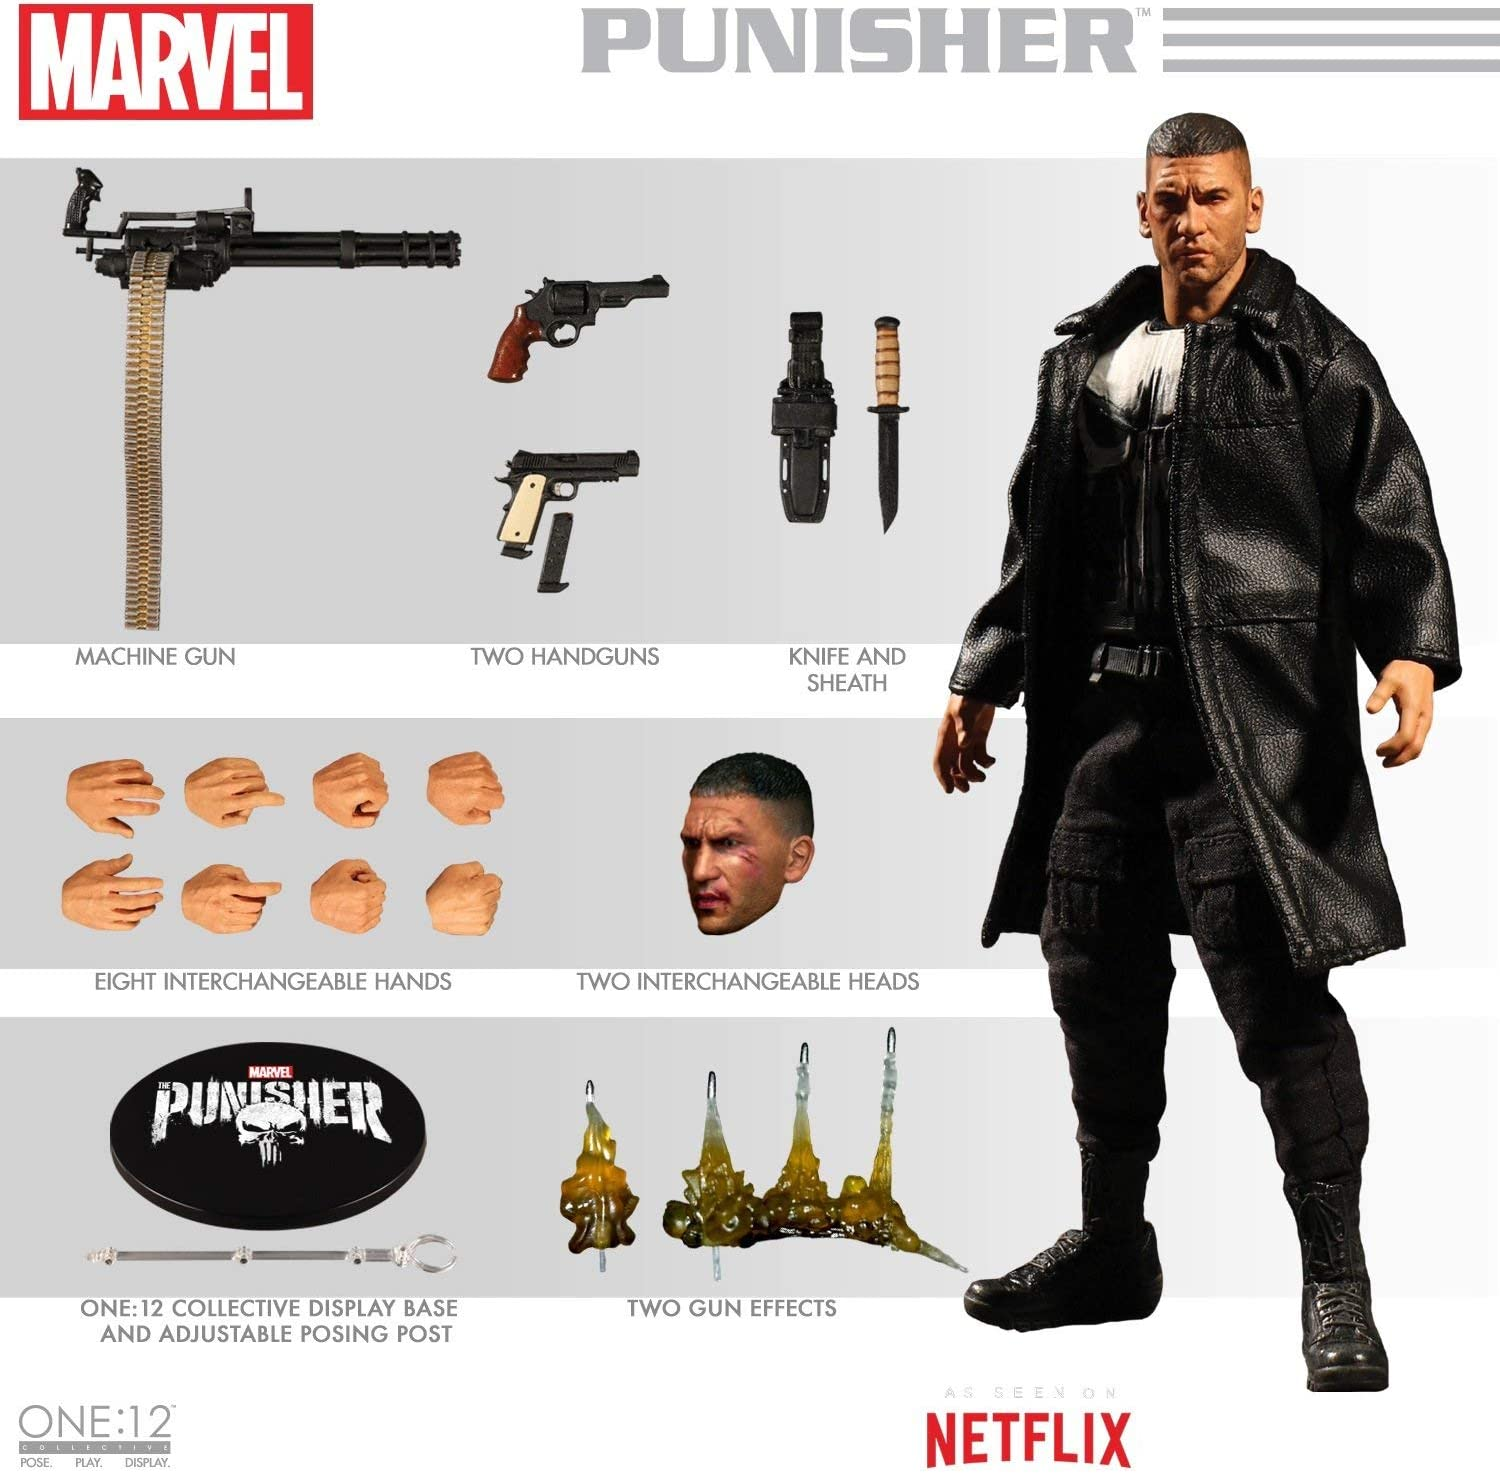 Mezco MAR188817 Toys One: 12 Collective: Marvel Netflix Punisher Action Figure, Multi-Colored